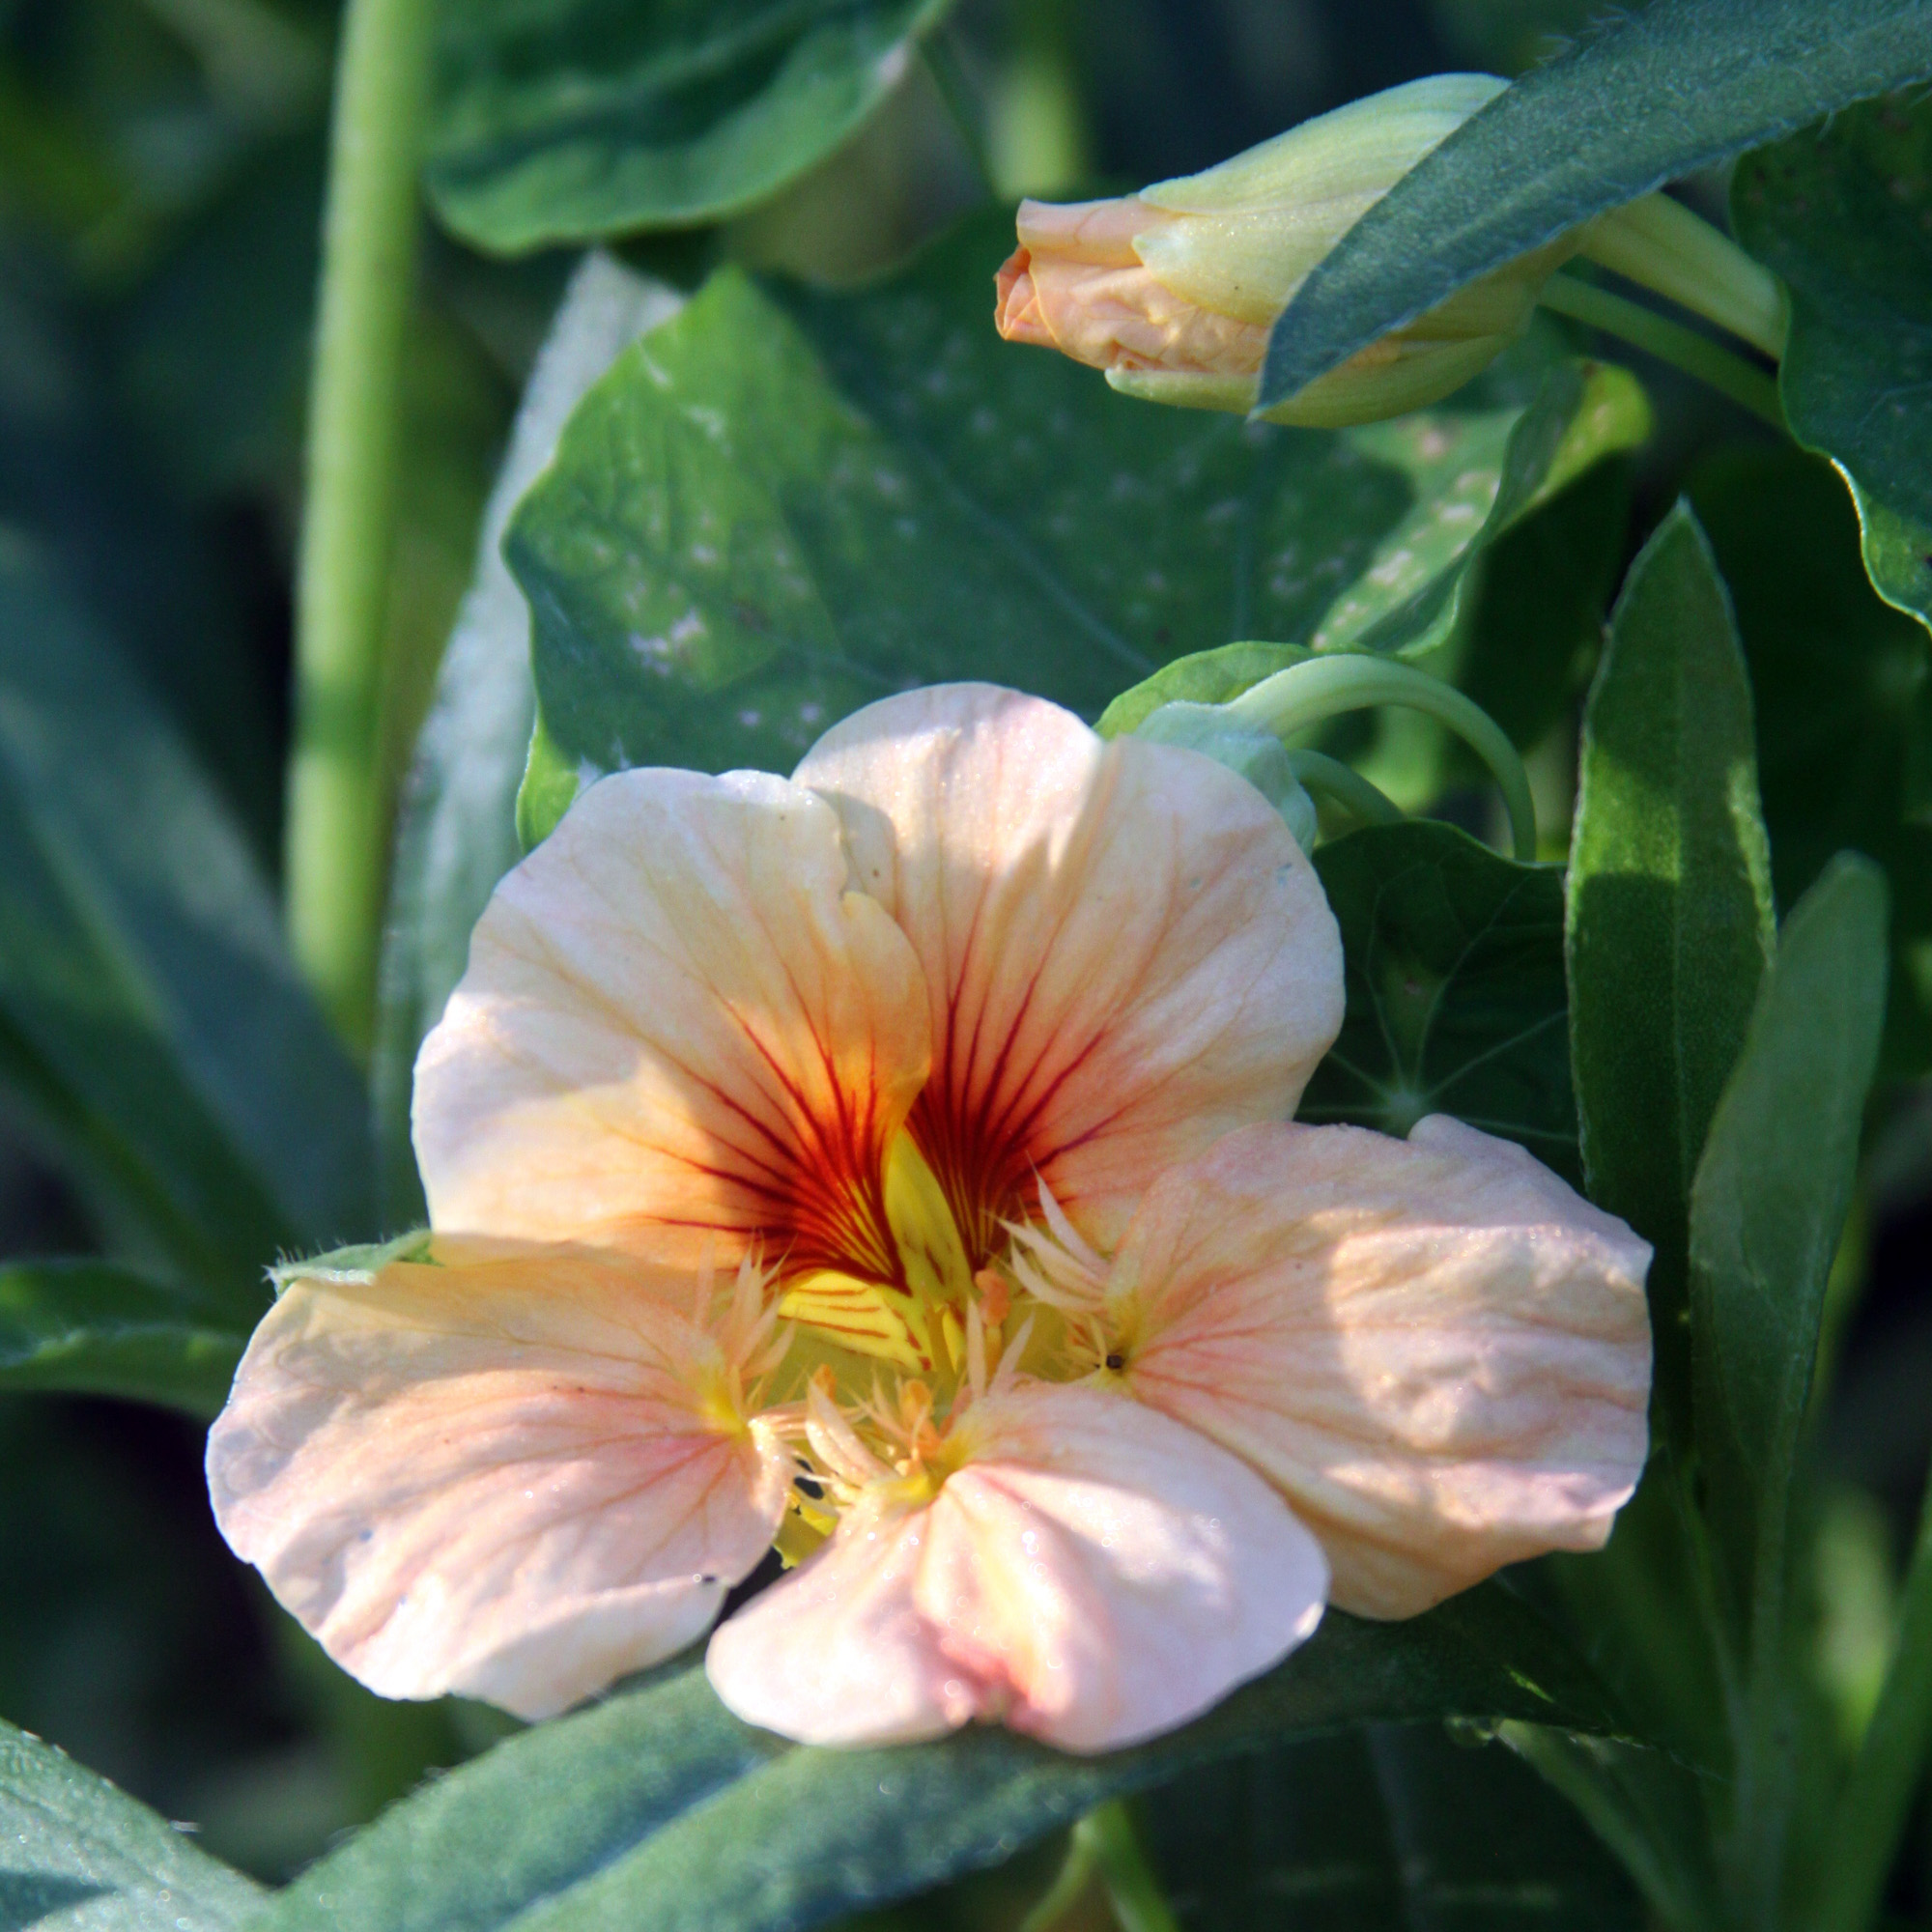 A Peach Nasturtium Peeking Out from Other Plants